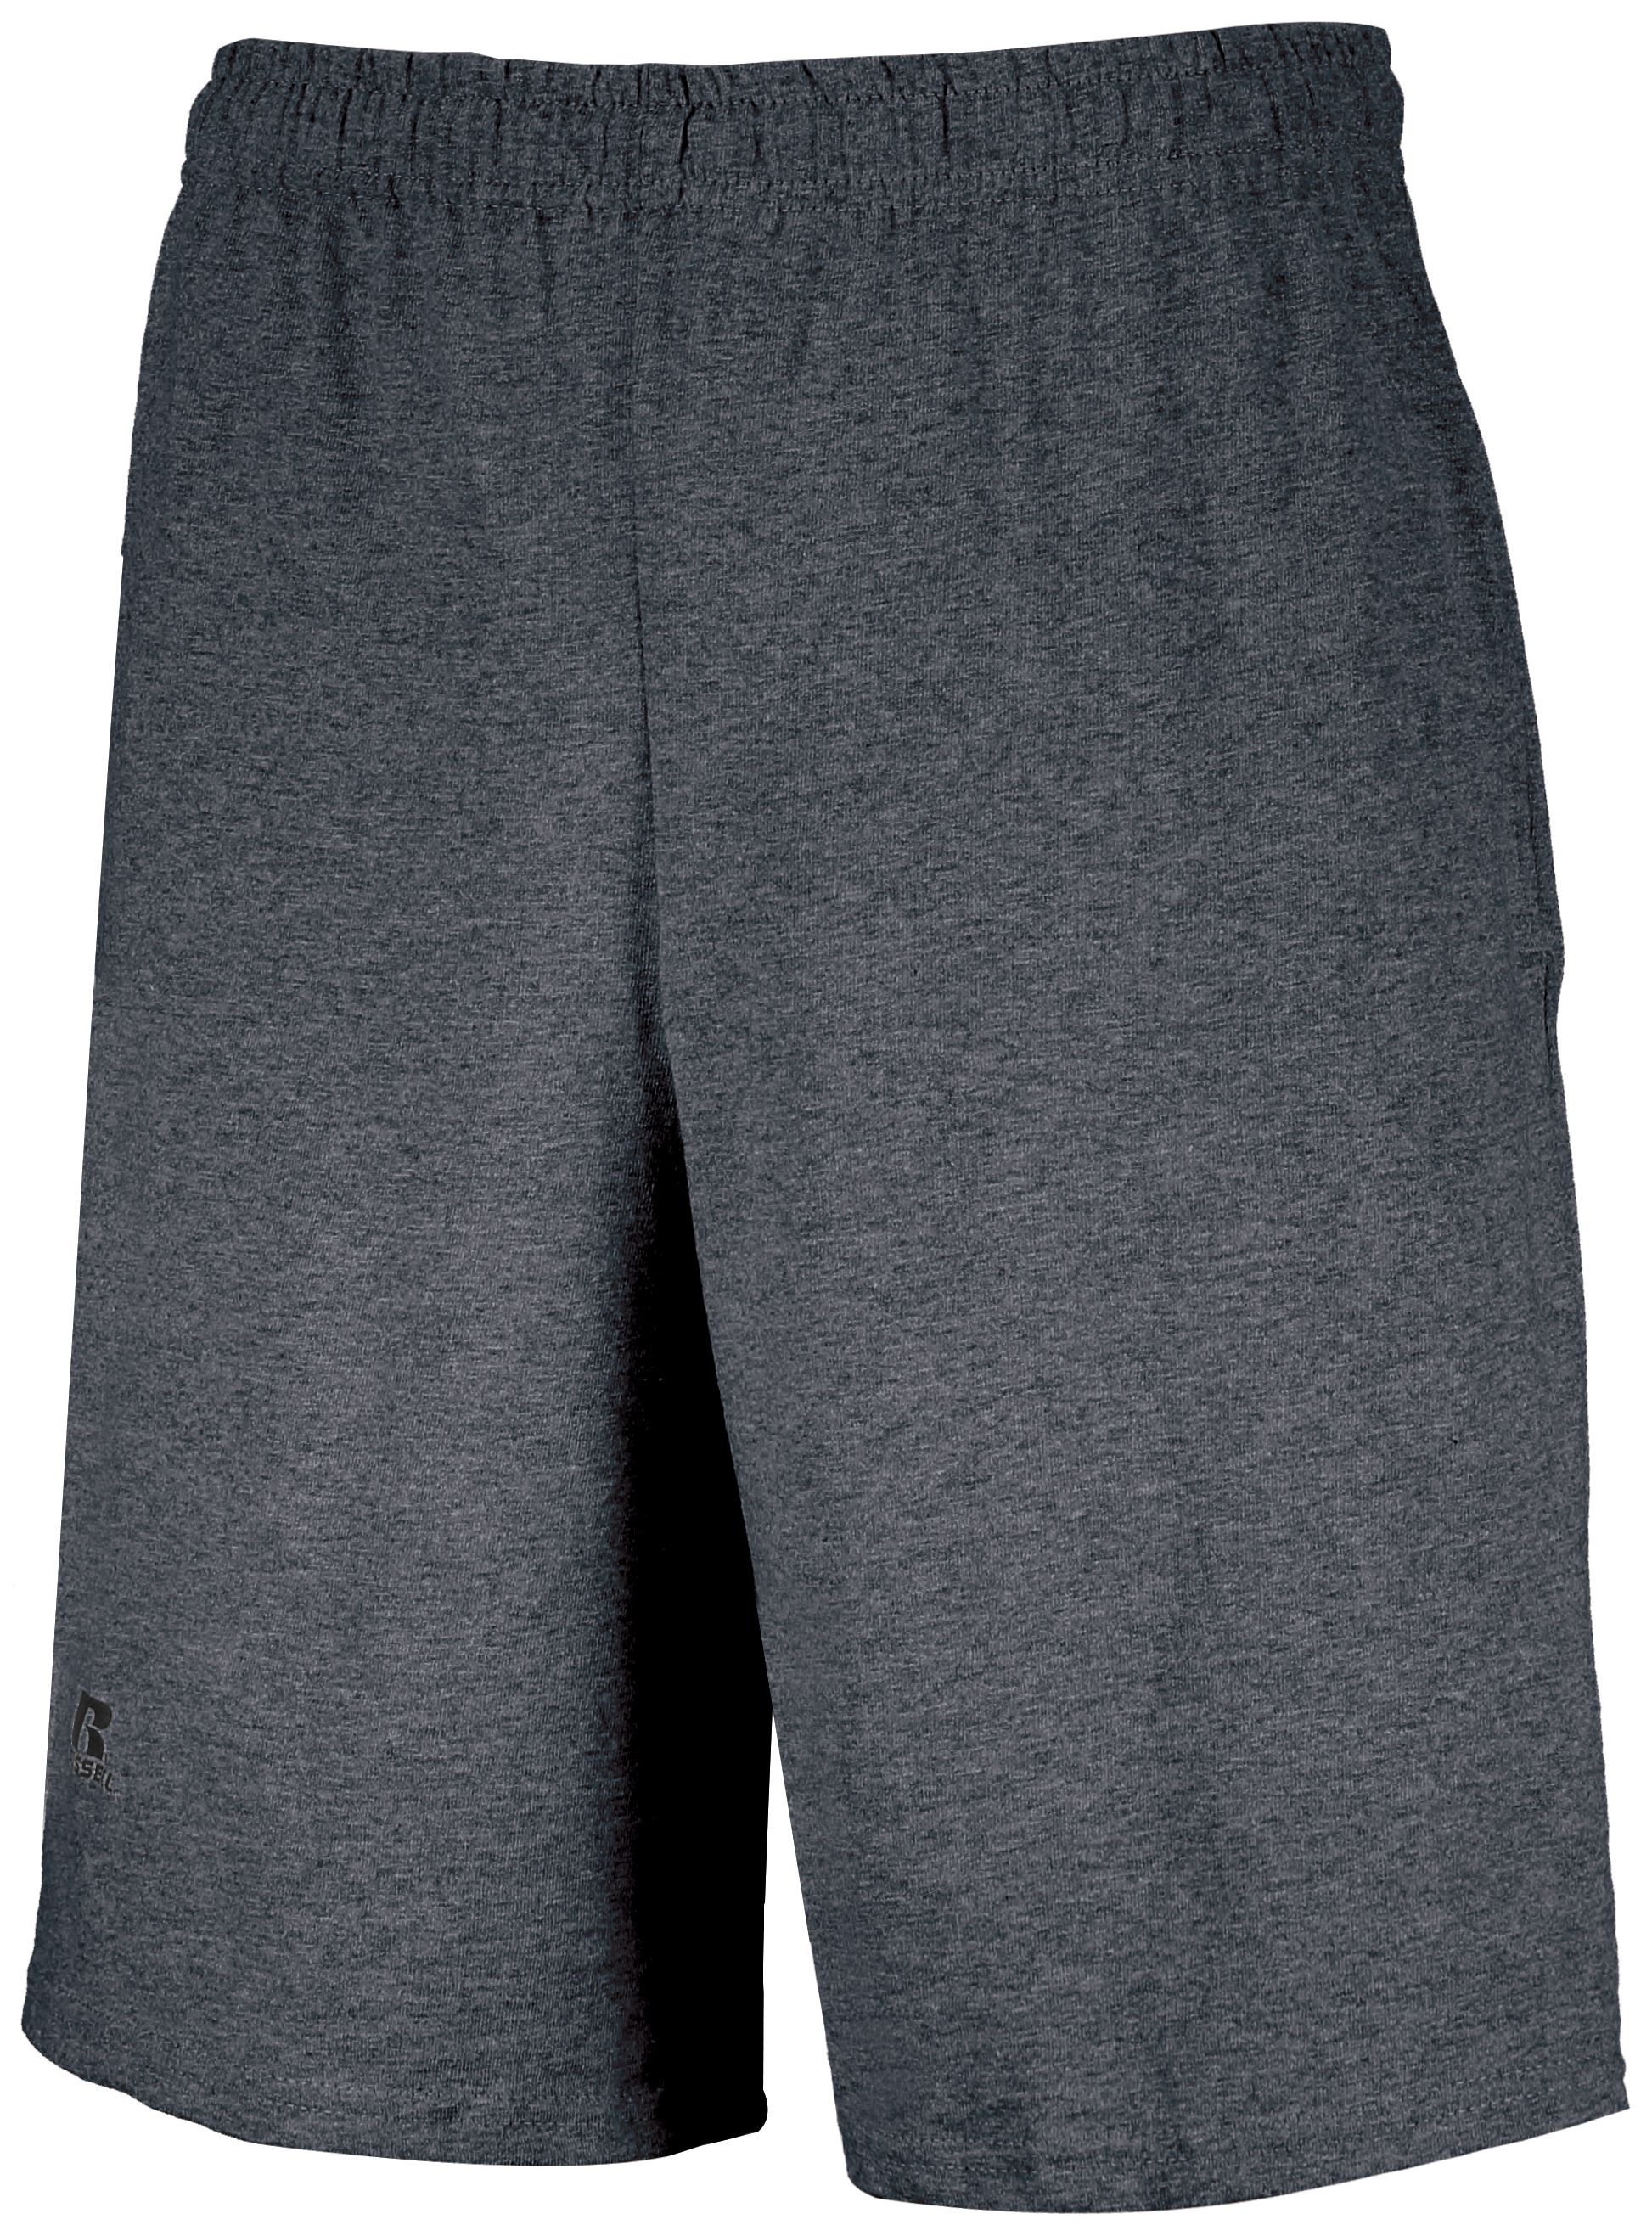 Basic Cotton Pocket Shorts - Black Heather